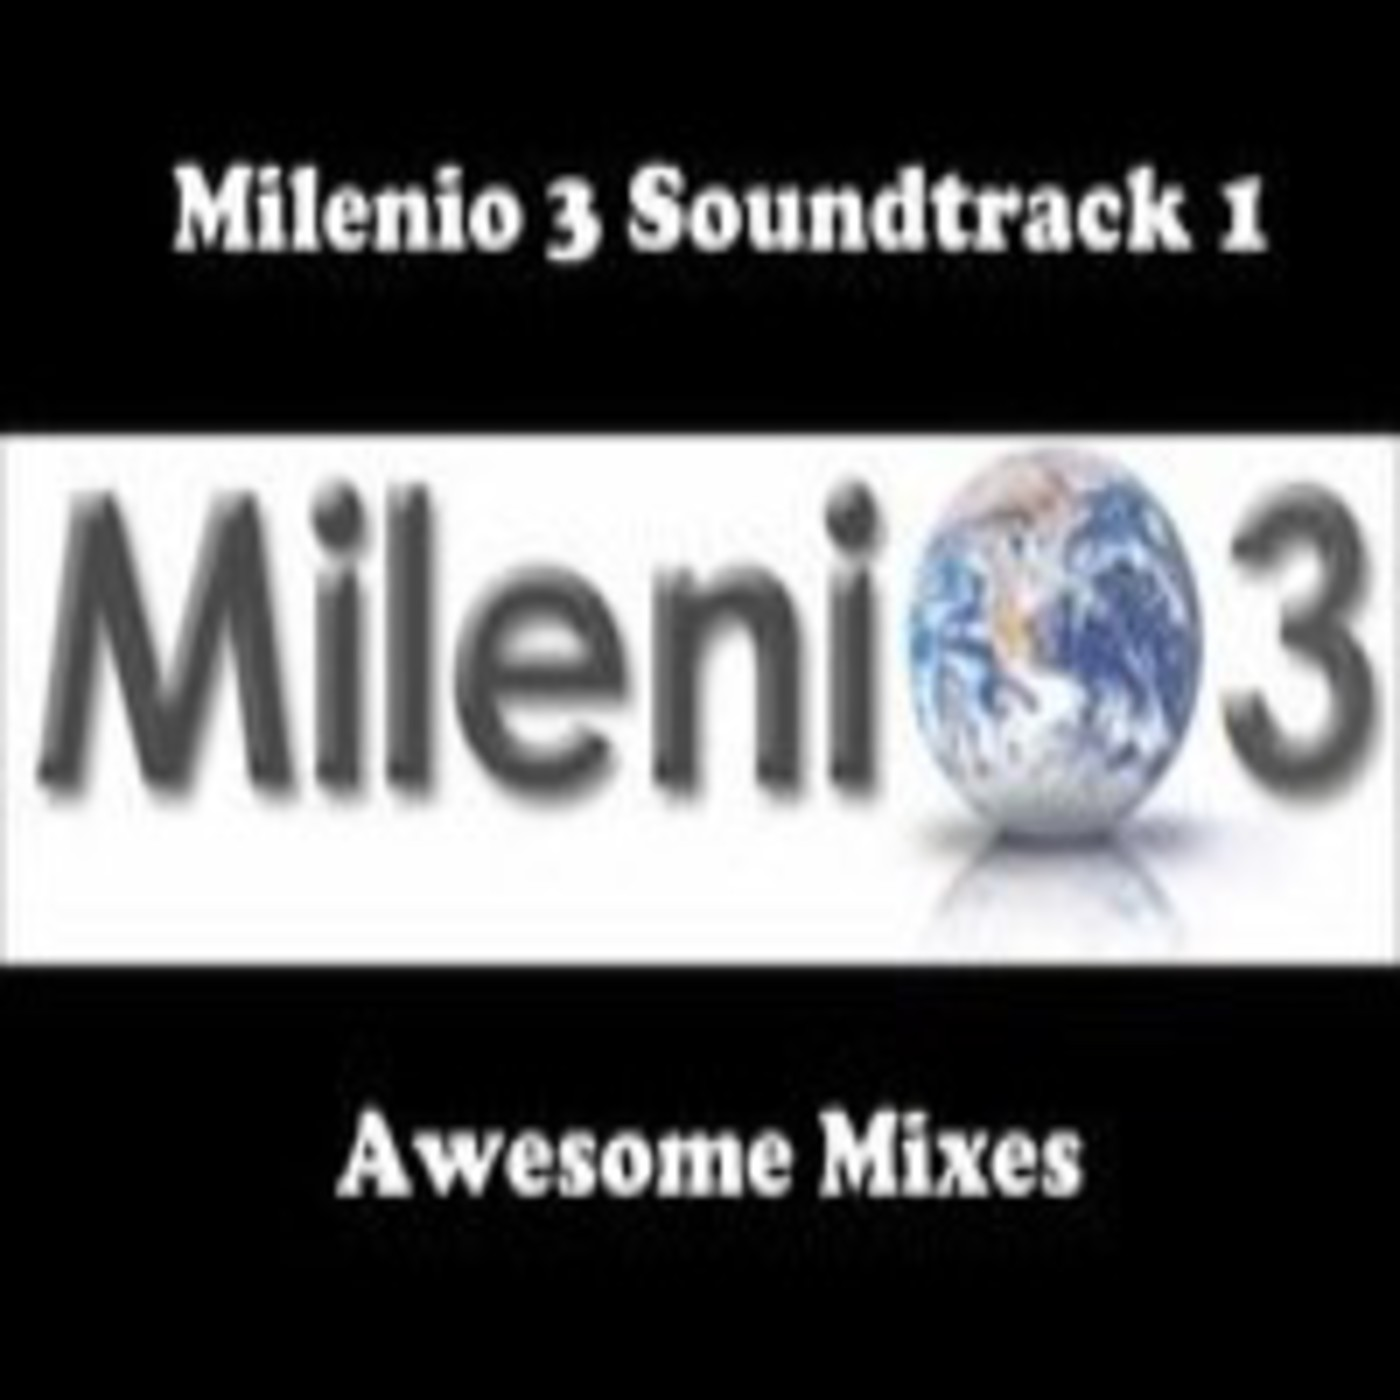 Milenio 3 soundtrack 1 awesome mixes en musicas milenio for Oir cuarto milenio